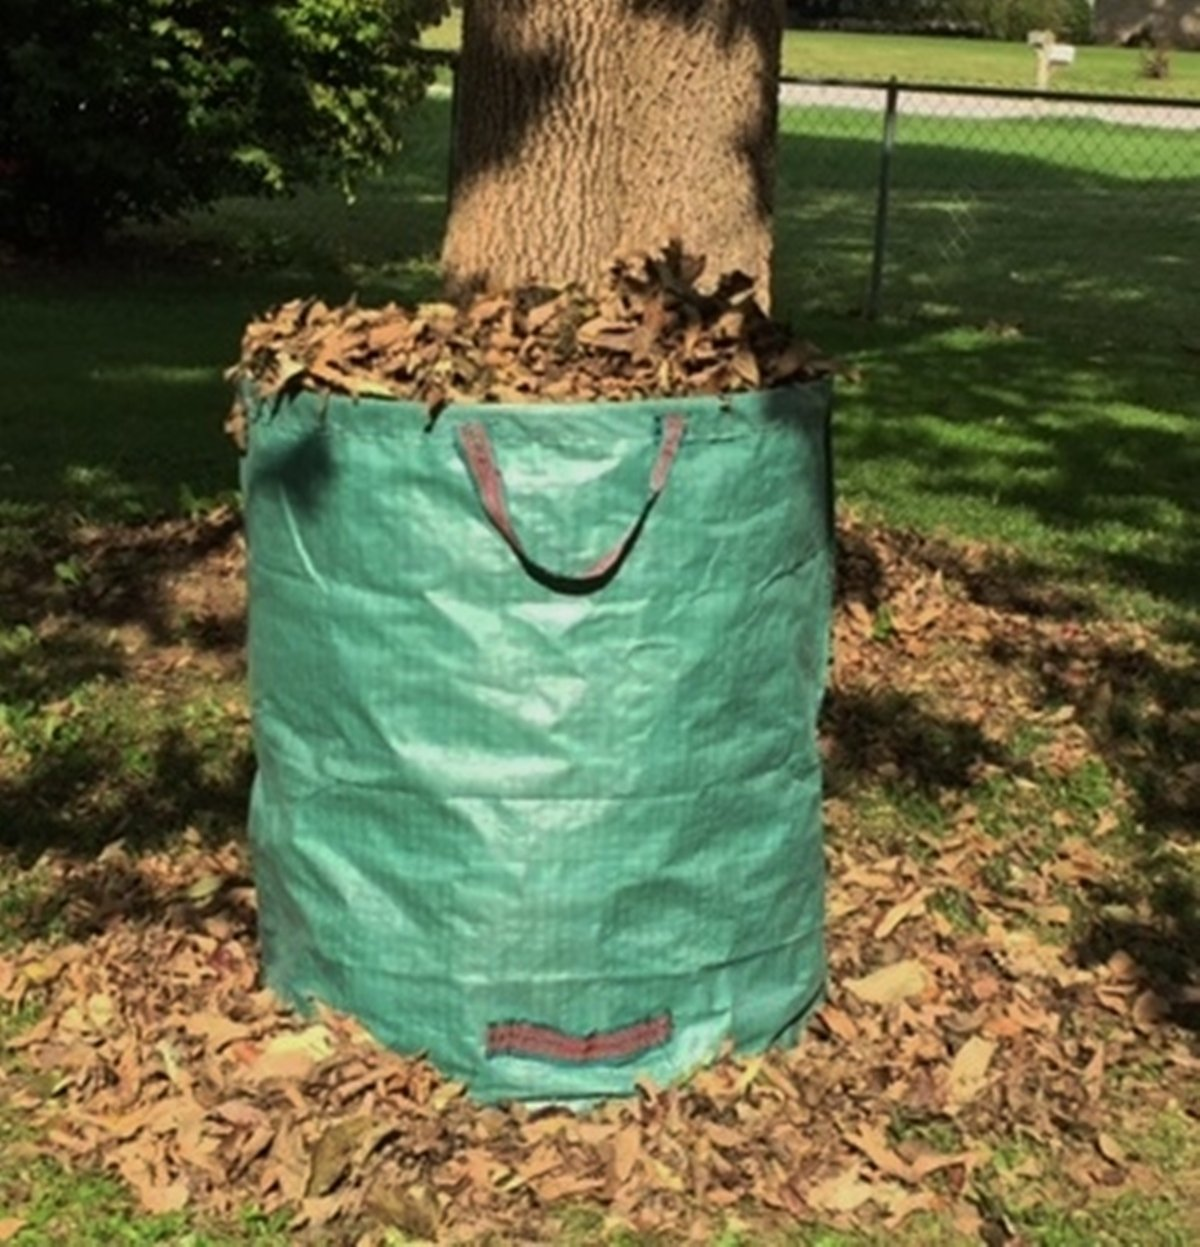 Go-GreenGardening Large Reusable Yard, Gardening & Leaf Waste Bag,Collapsible 70 gal by Go-GreenGardening